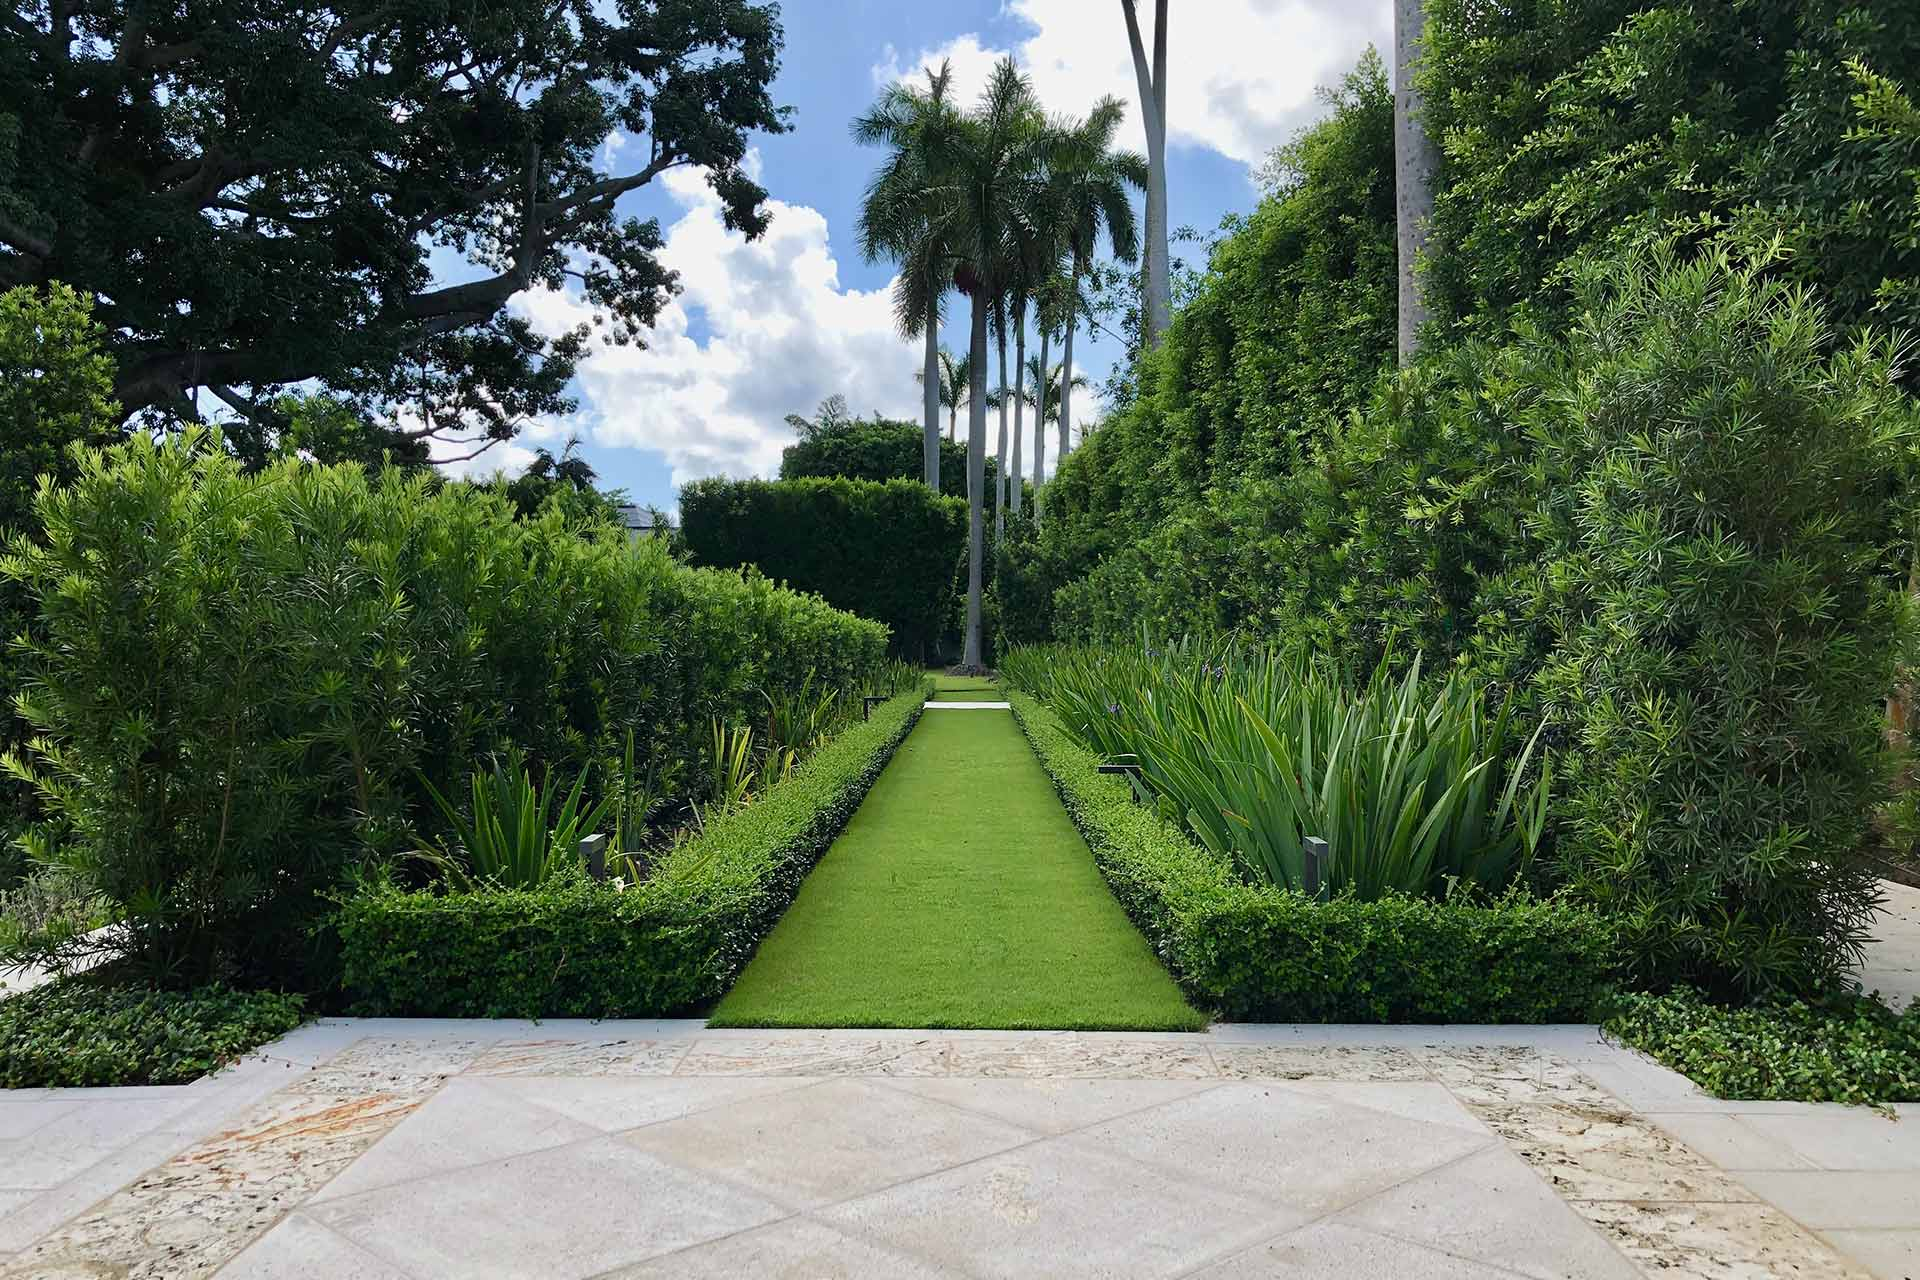 Landscaping and garden path at an estate in Palm Beach, FL.